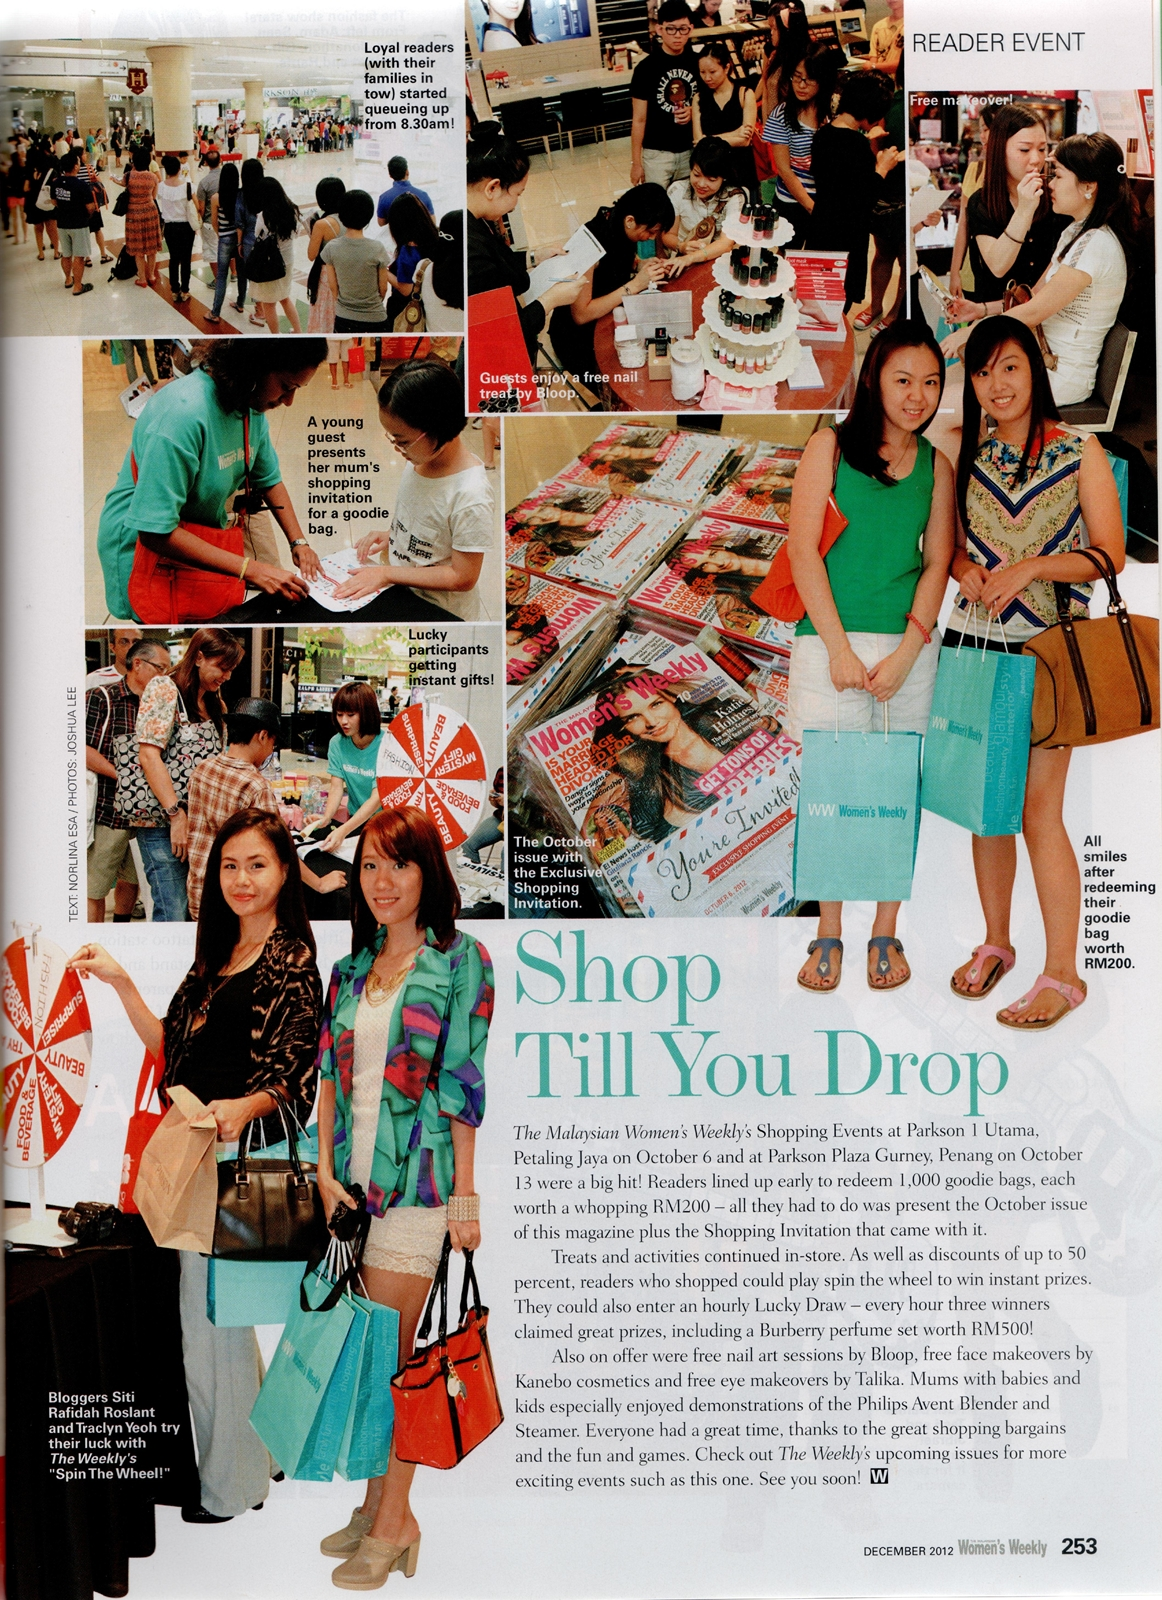 Women's Weekly December 2012 Feature